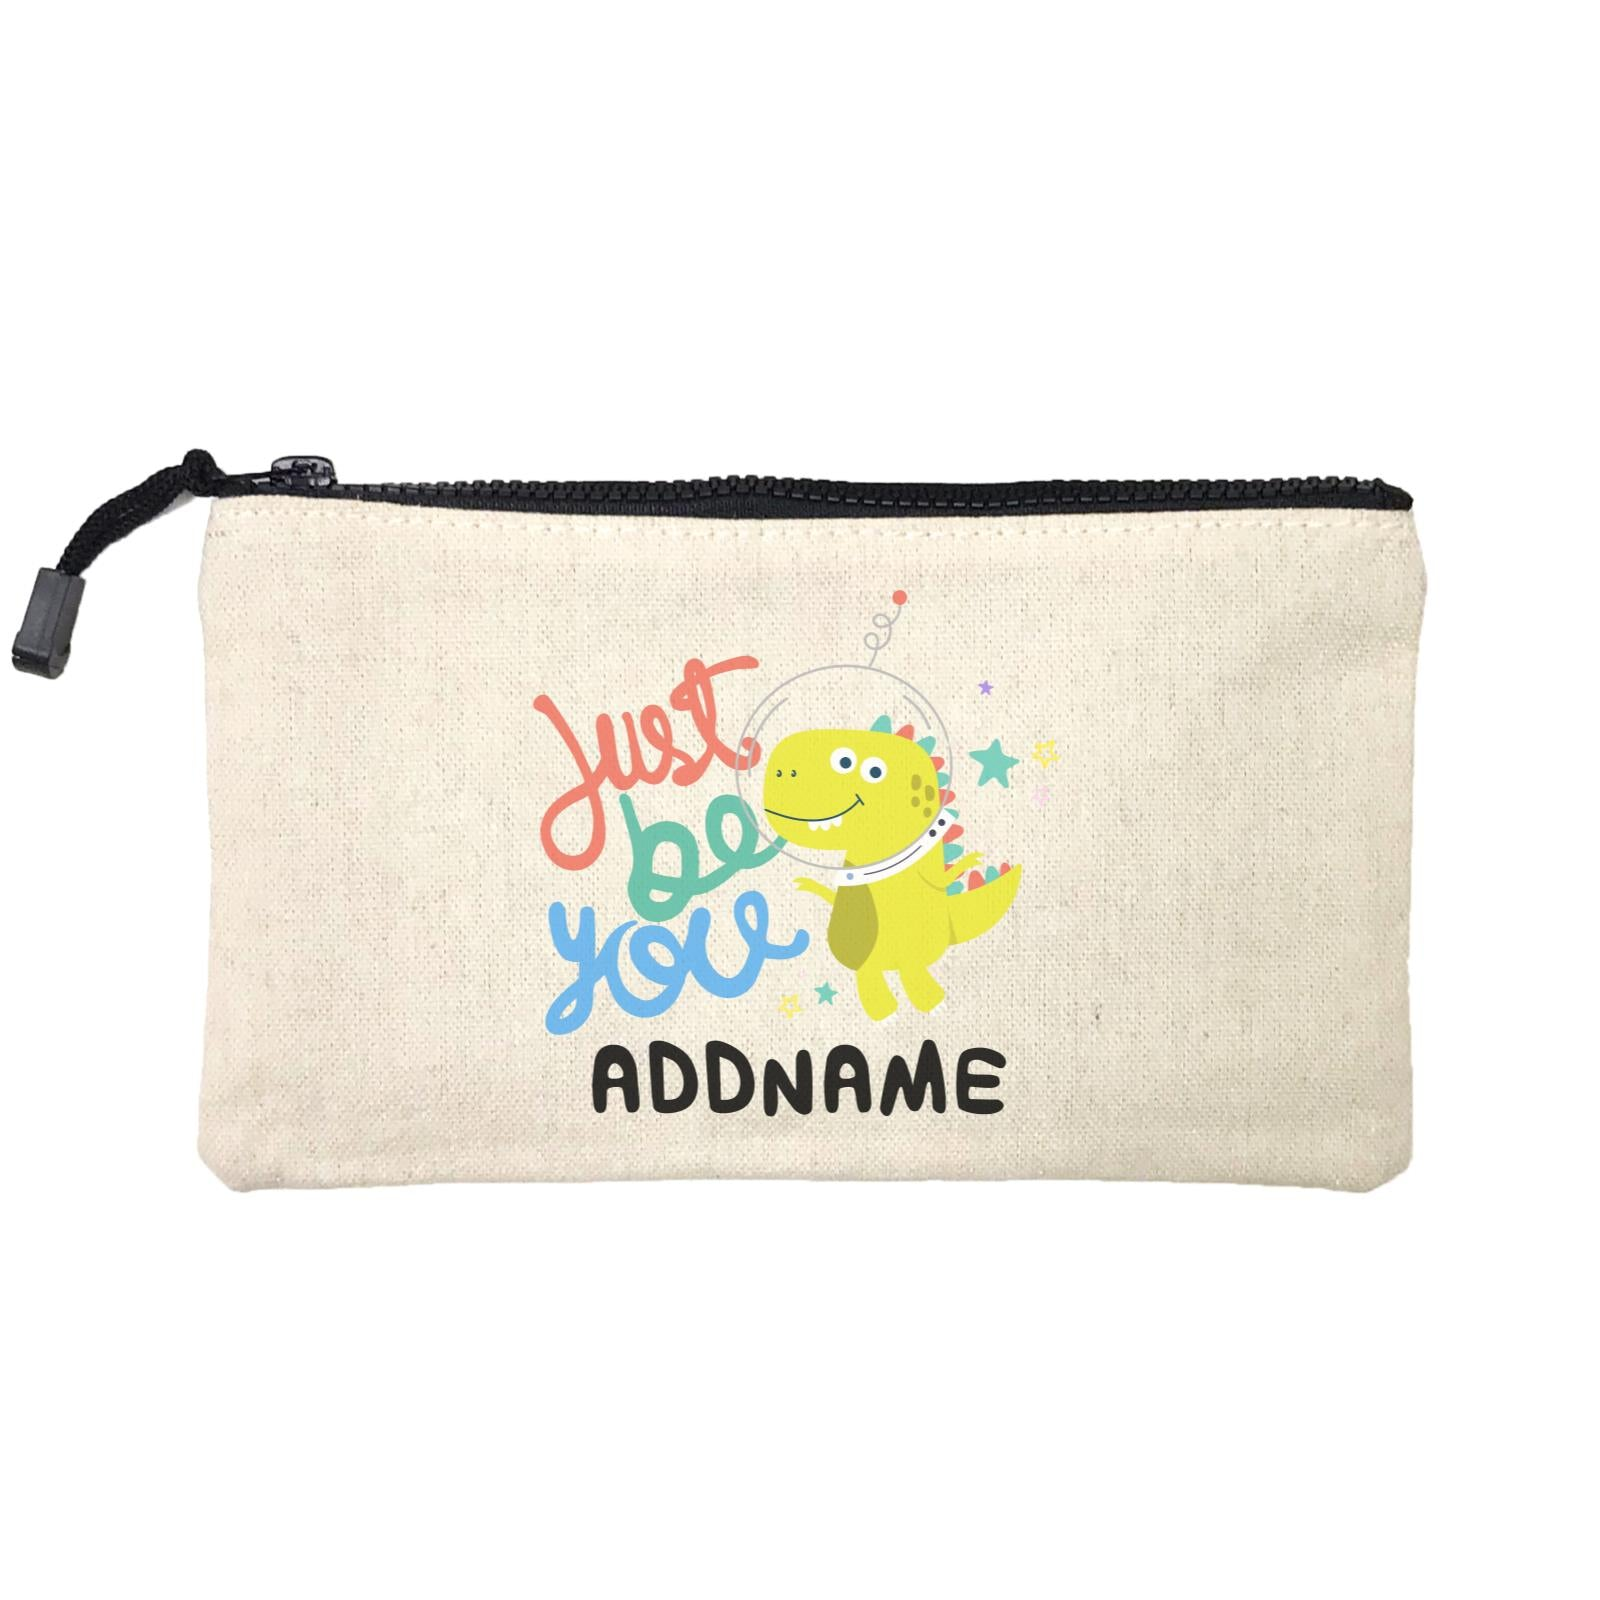 Children's Day Gift Series Just Be You Space Dinosaur Addname SP Stationery Pouch